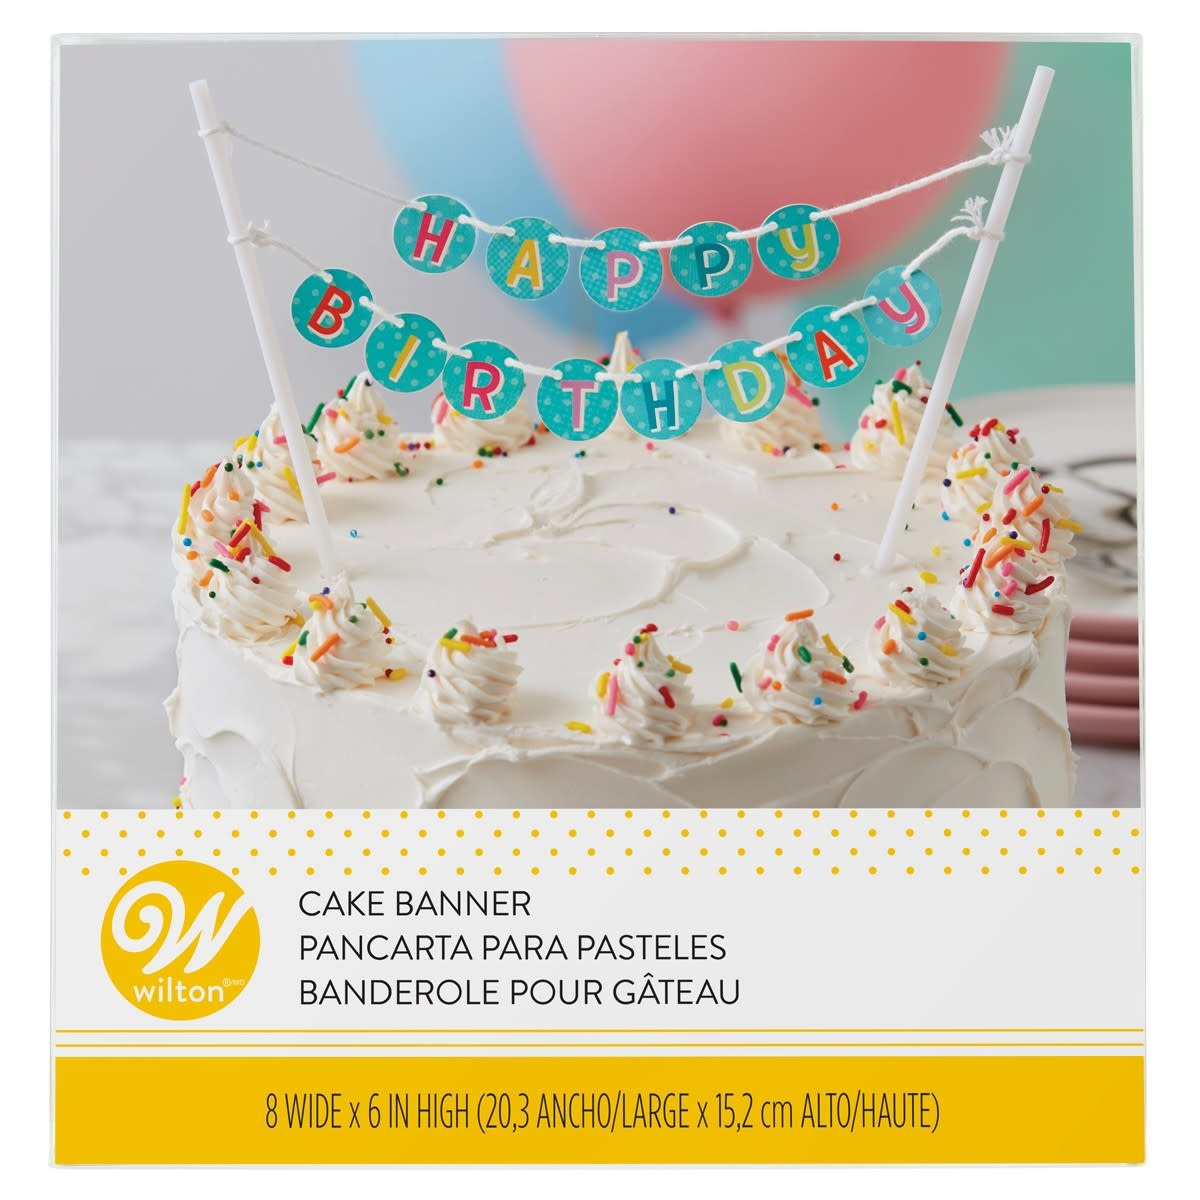 Tremendous Wilton Cake Banner Happy Birthday Taartdecoratief Nl Funny Birthday Cards Online Fluifree Goldxyz